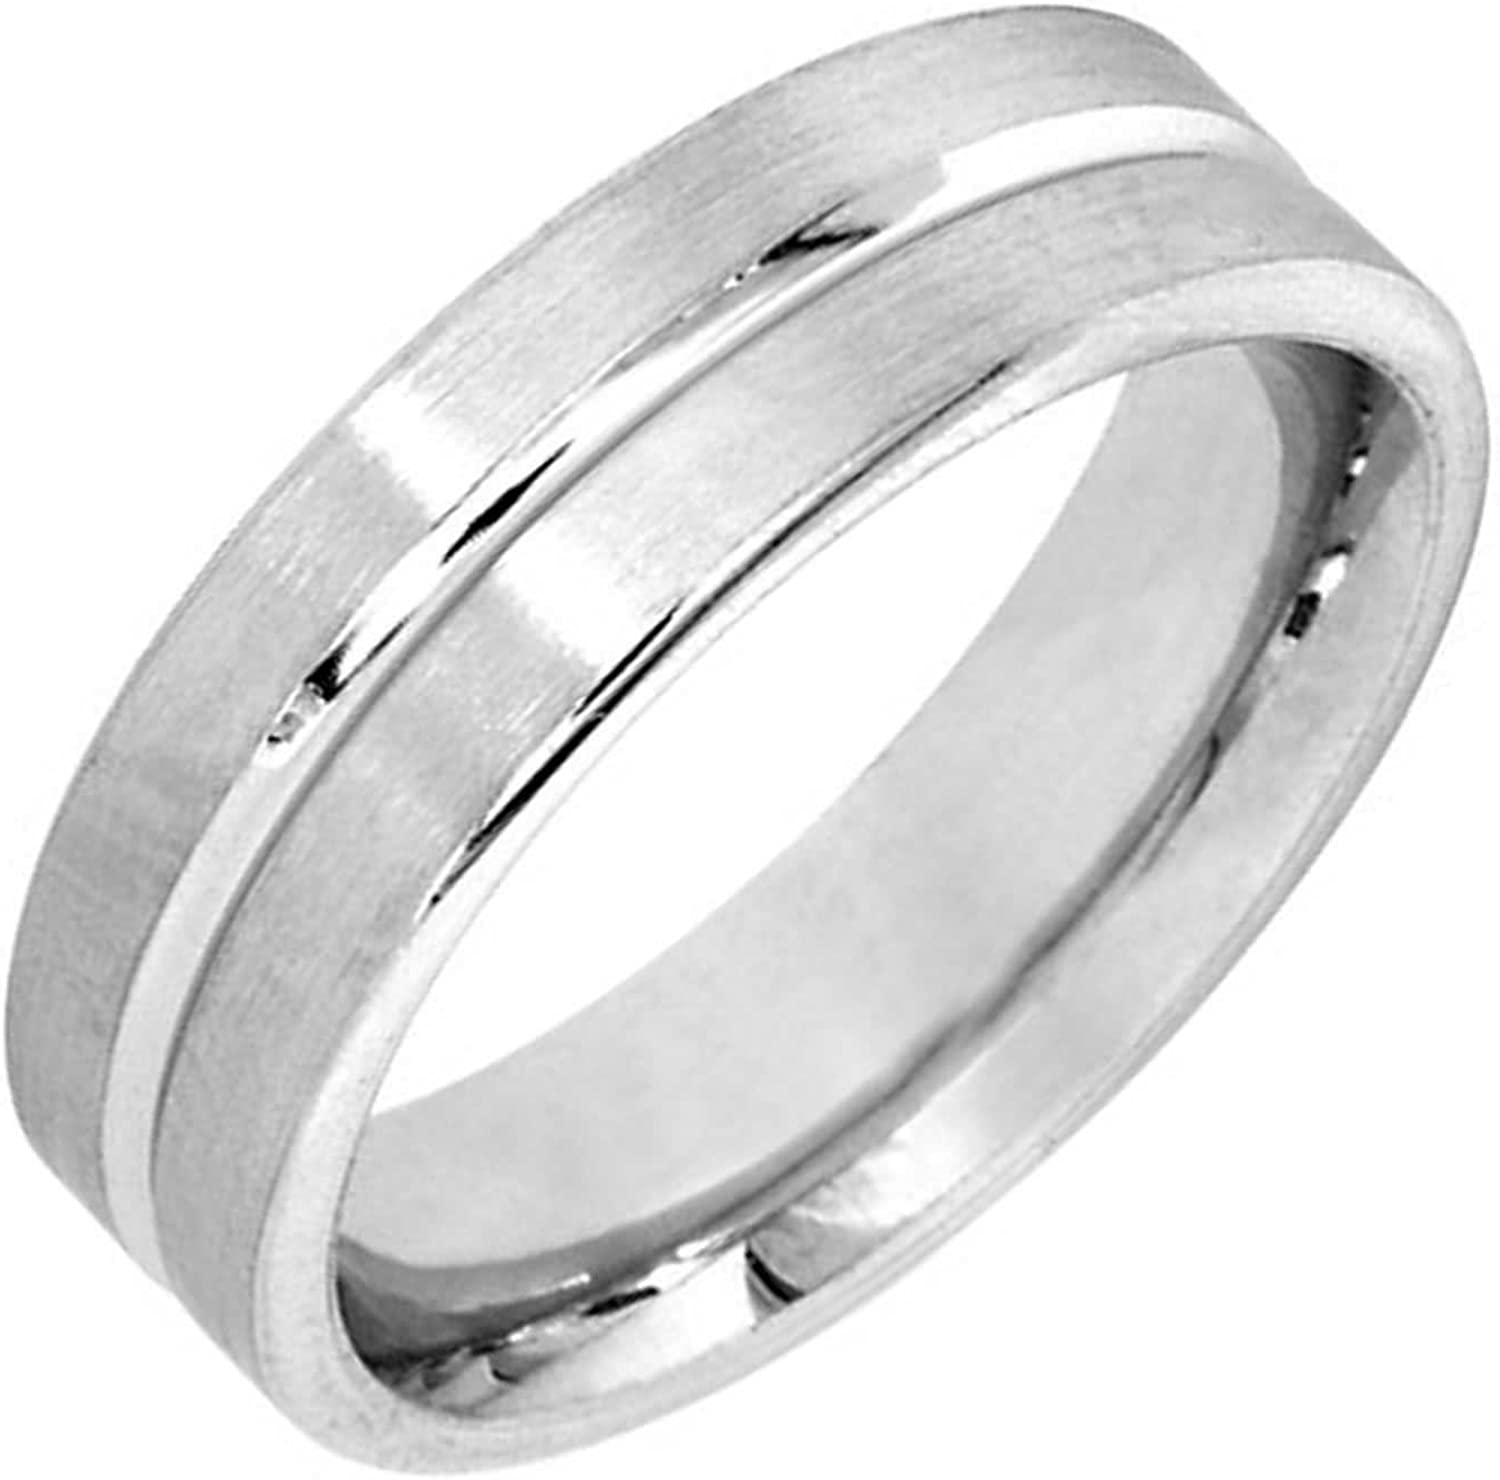 Stainless Steel Diamond-Cut Striped Comfort Fit Half-Round Wedding Band Ring